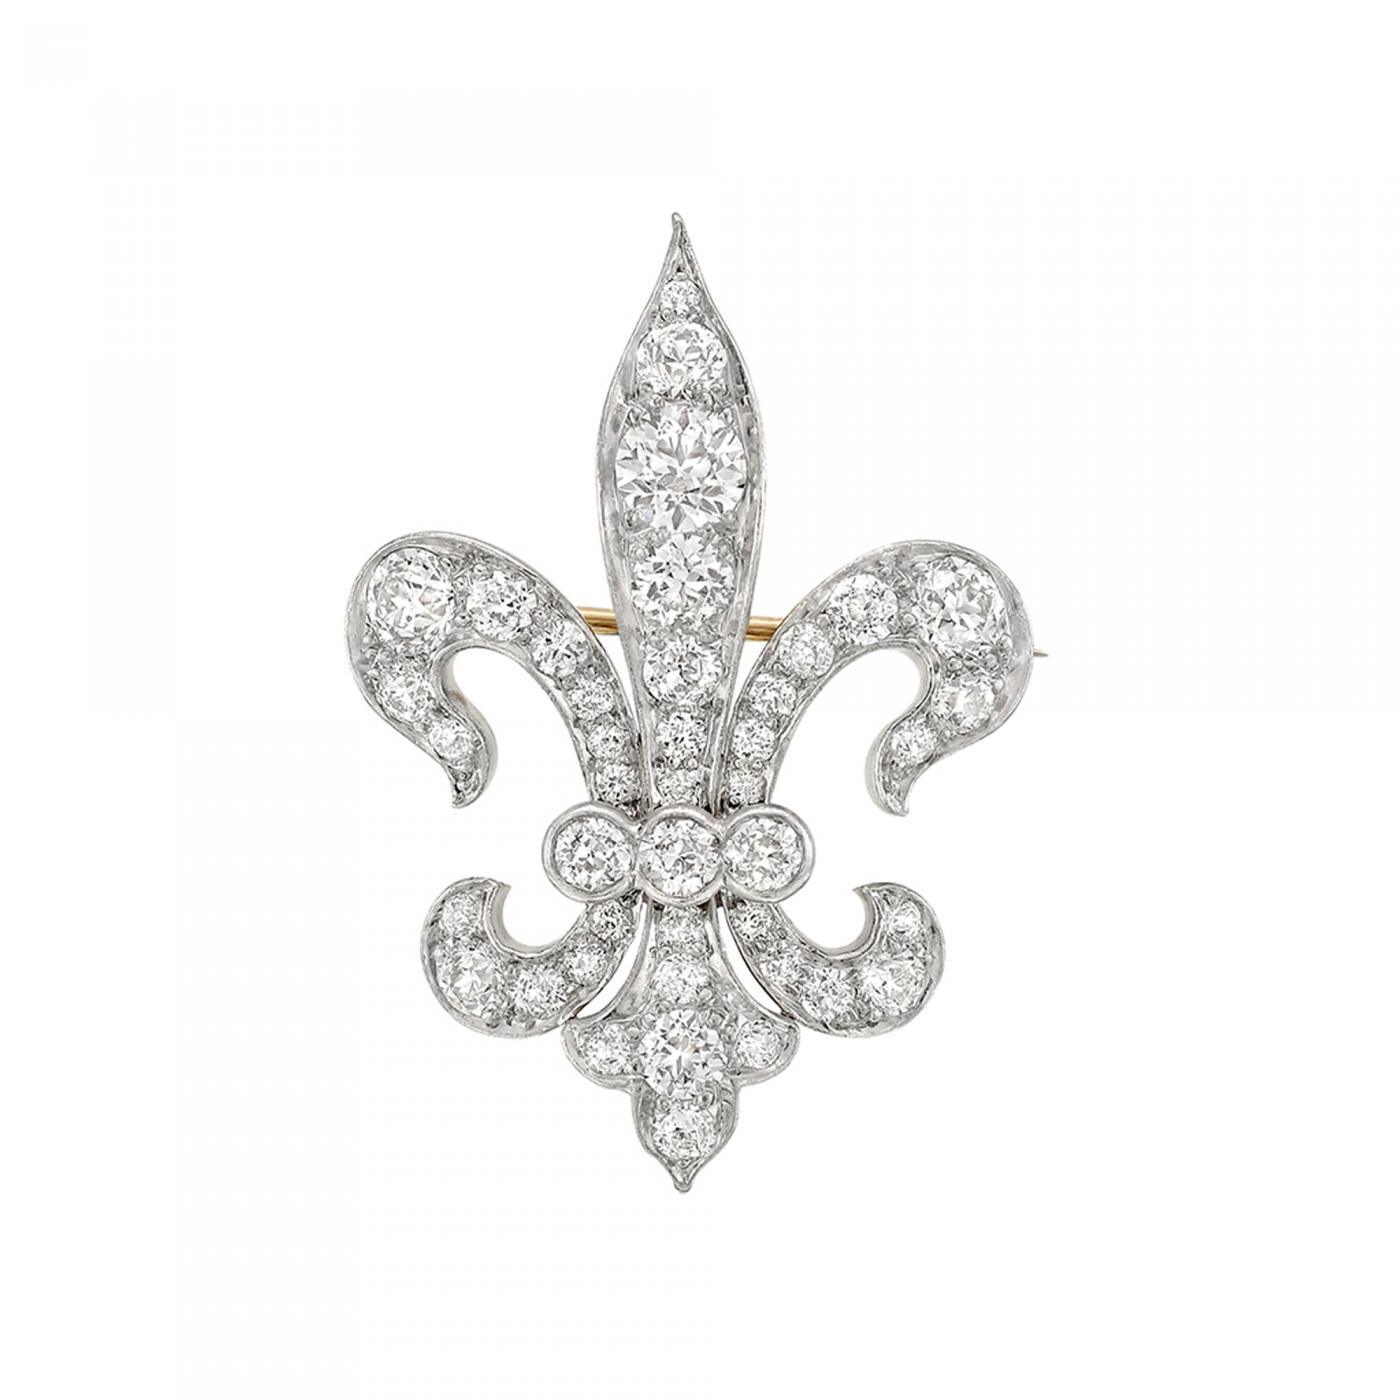 Tiffany and co tiffany co late 19th century diamond fleur de listings jewelry brooches and pins brooches pins aloadofball